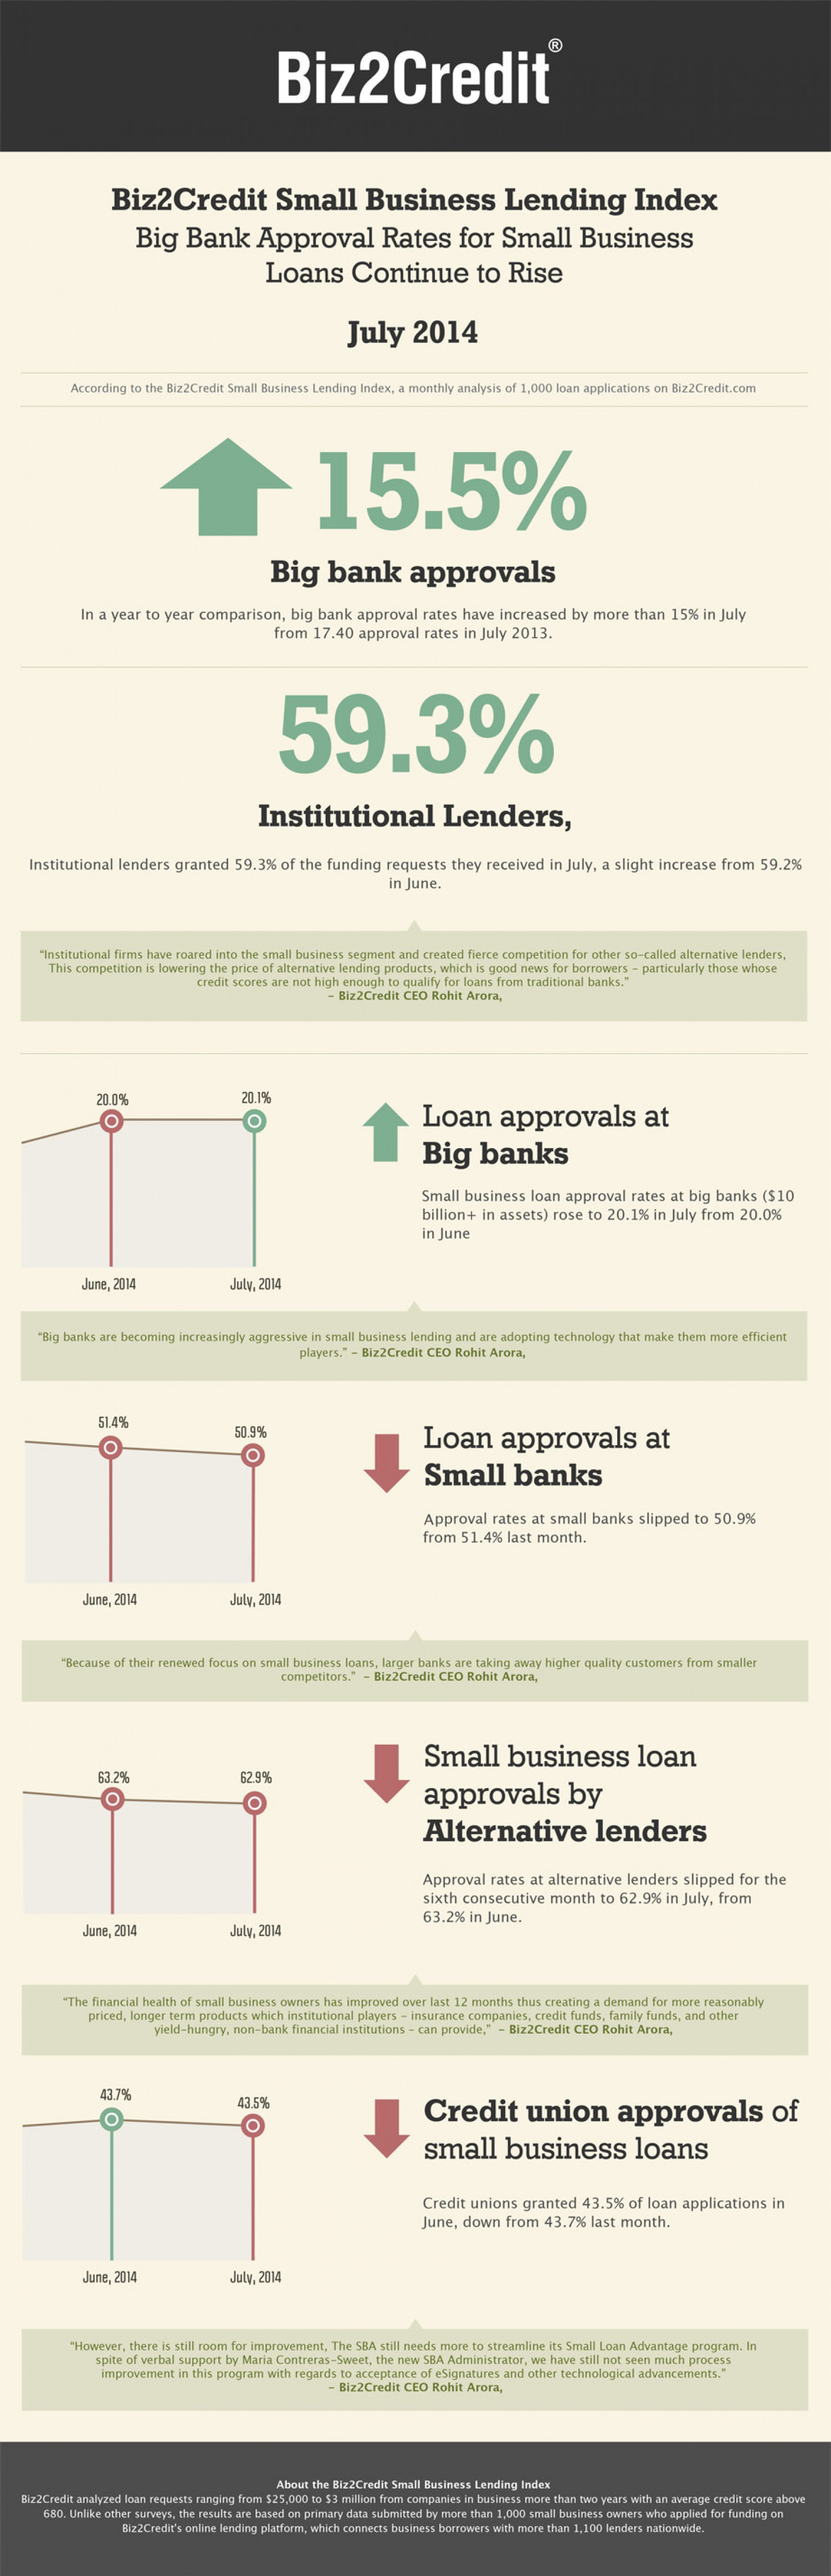 Big Bank Approval Rates for Small Business Loans Continue to Rise, According to July 2014 Biz2Credit Small Business Lending Index Infographic